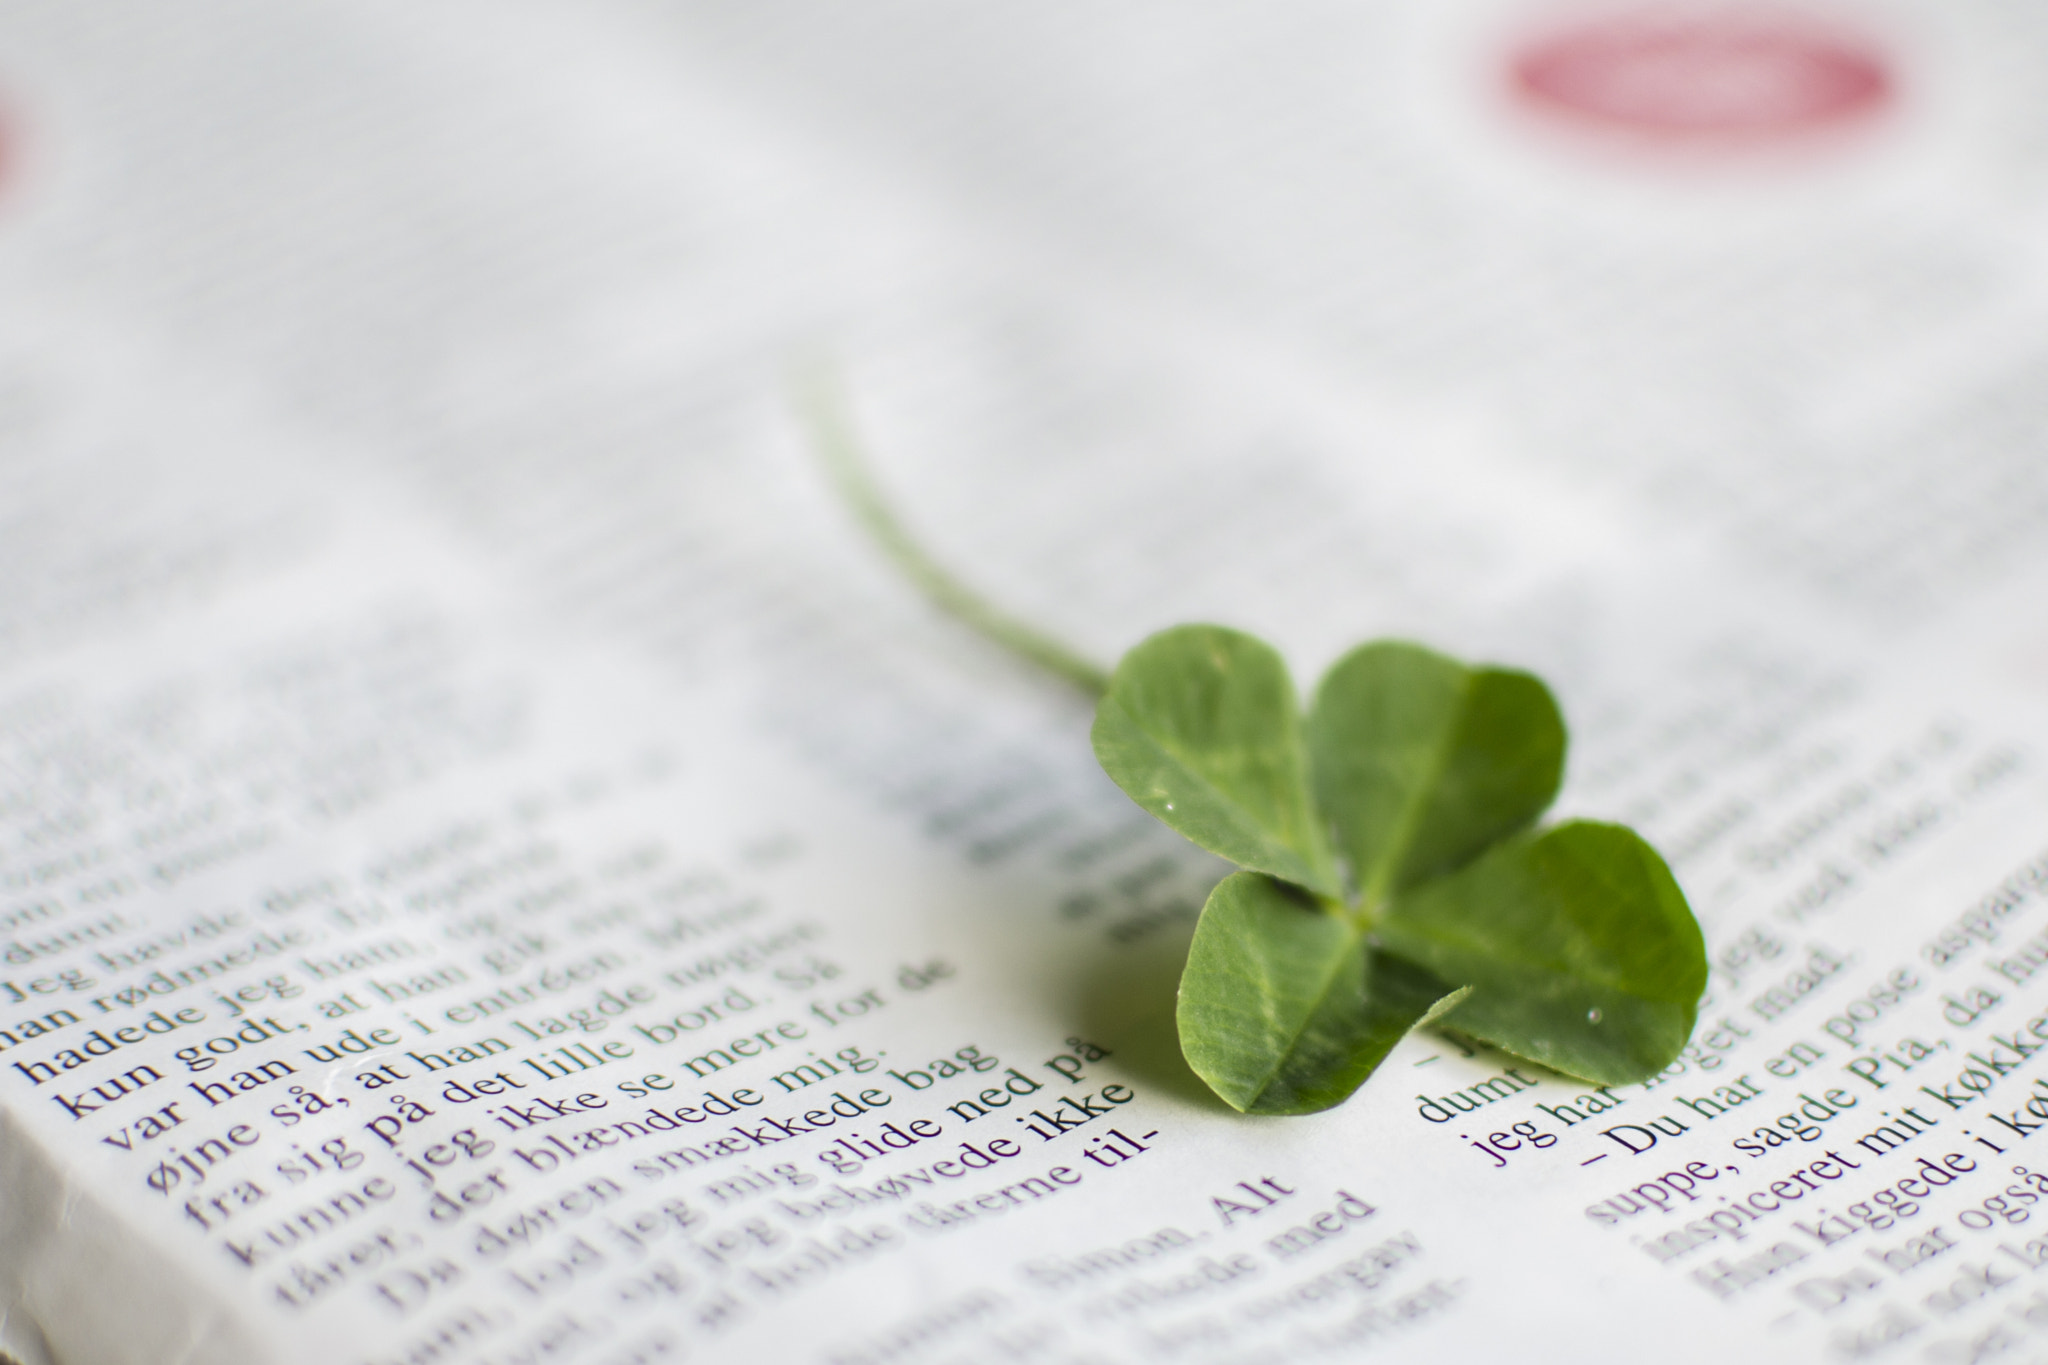 Photograph A little luck on found the way by John Knutsson on 500px